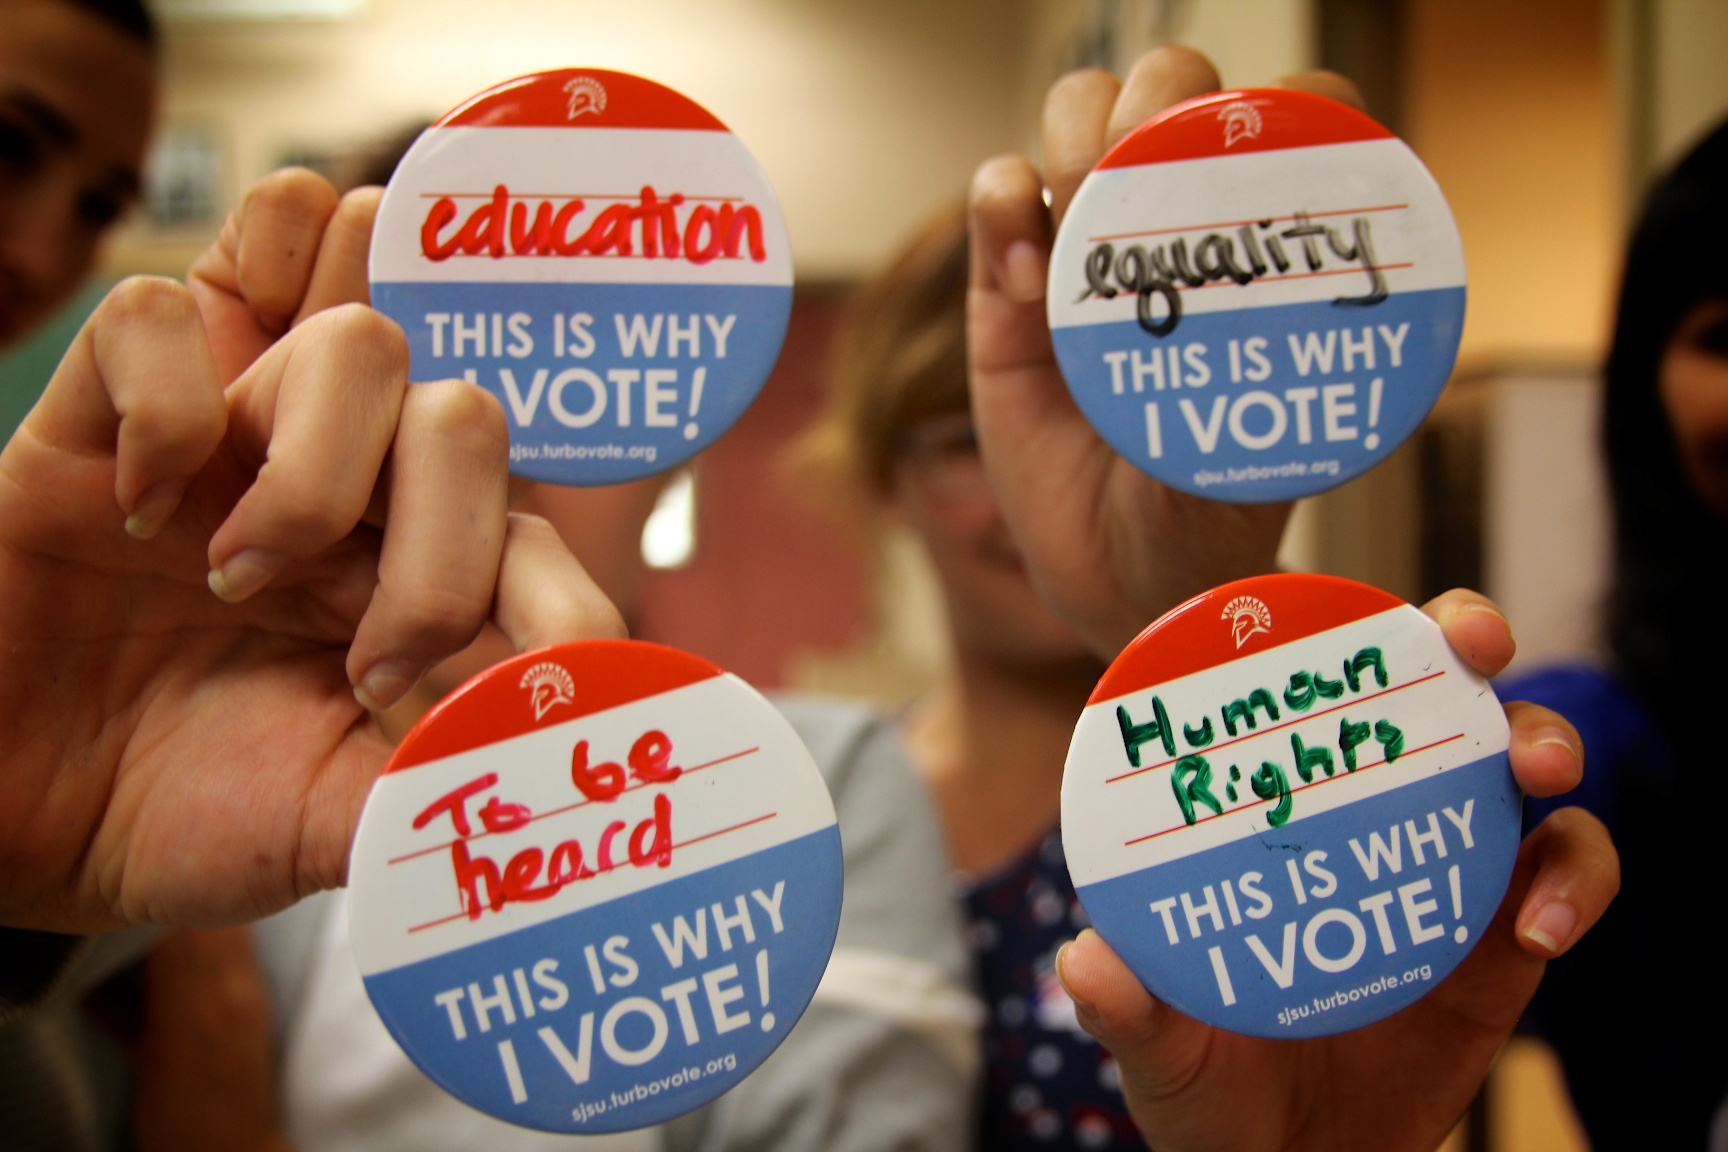 Vote buttons with different messages of why people vote hand written on them.